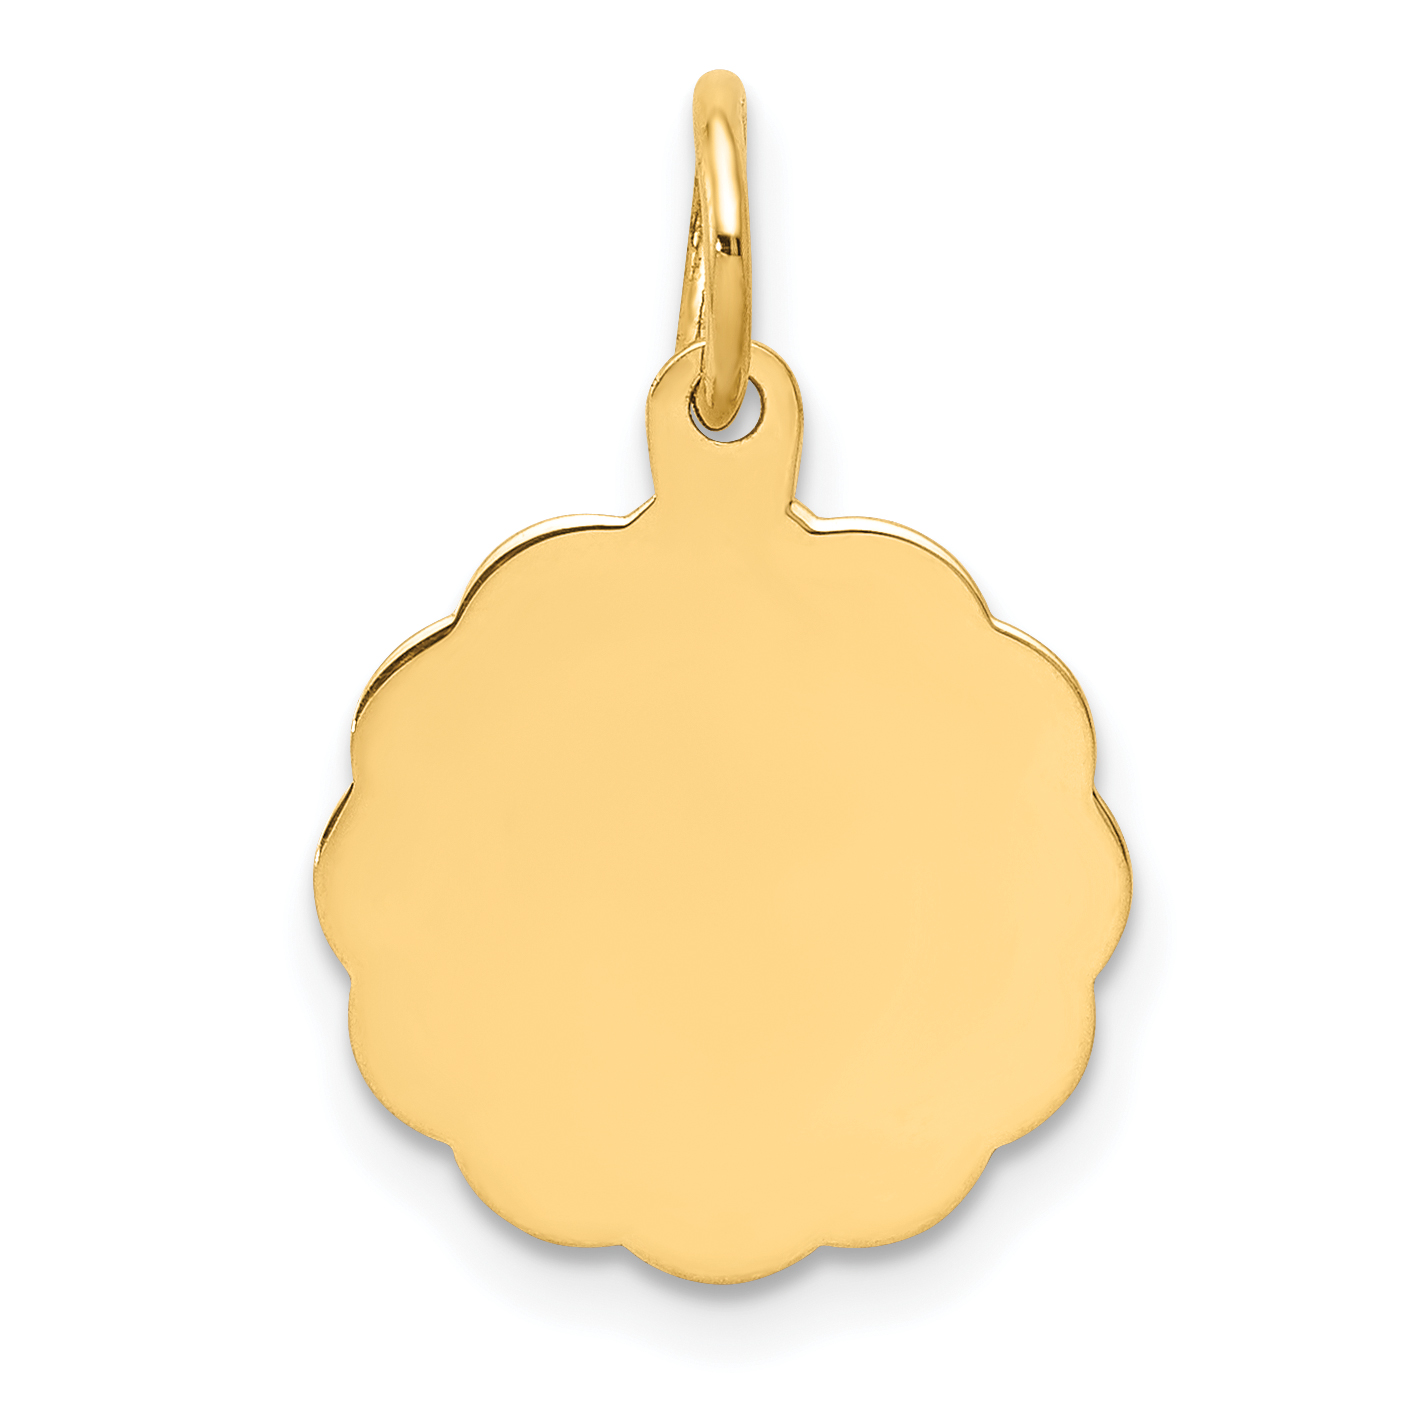 14k Yellow Gold .013 Gauge Engravable Scalloped Disc Pendant Charm Necklace Shaped Fine Jewelry Gifts For Women For Her - image 2 de 2